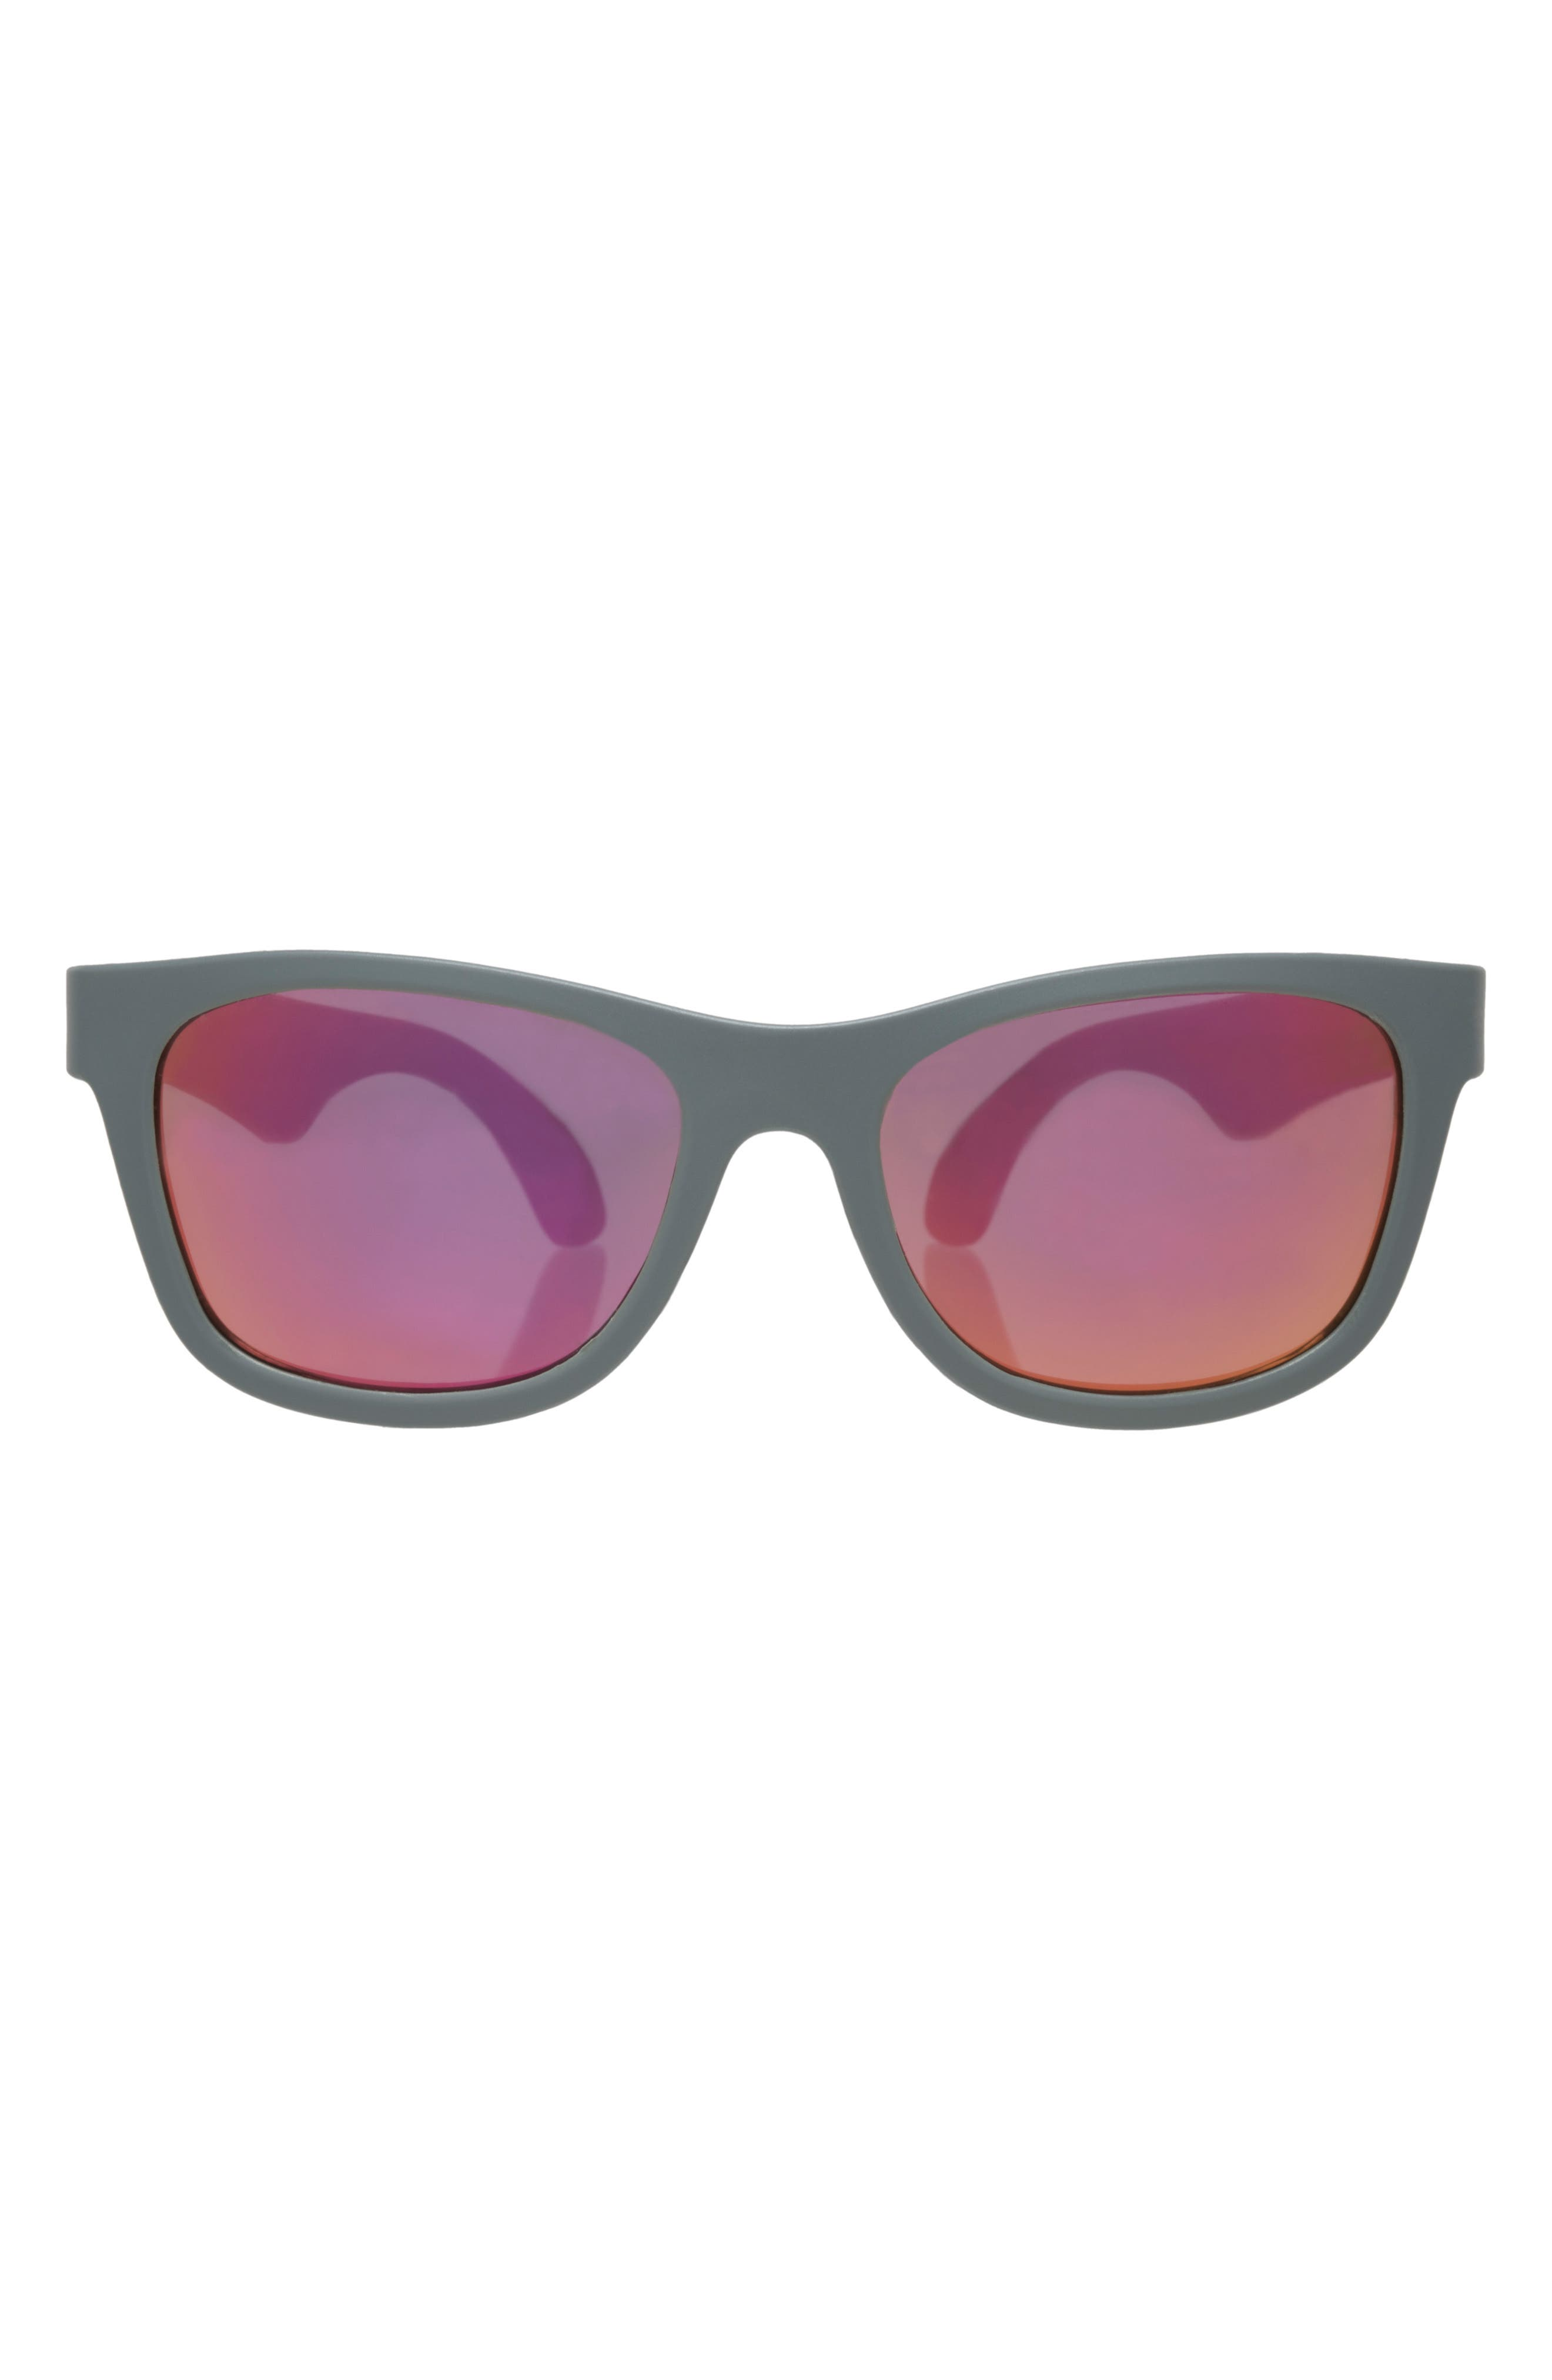 Aces Navigator Sunglasses,                         Main,                         color, Galactic Gray/ Pink